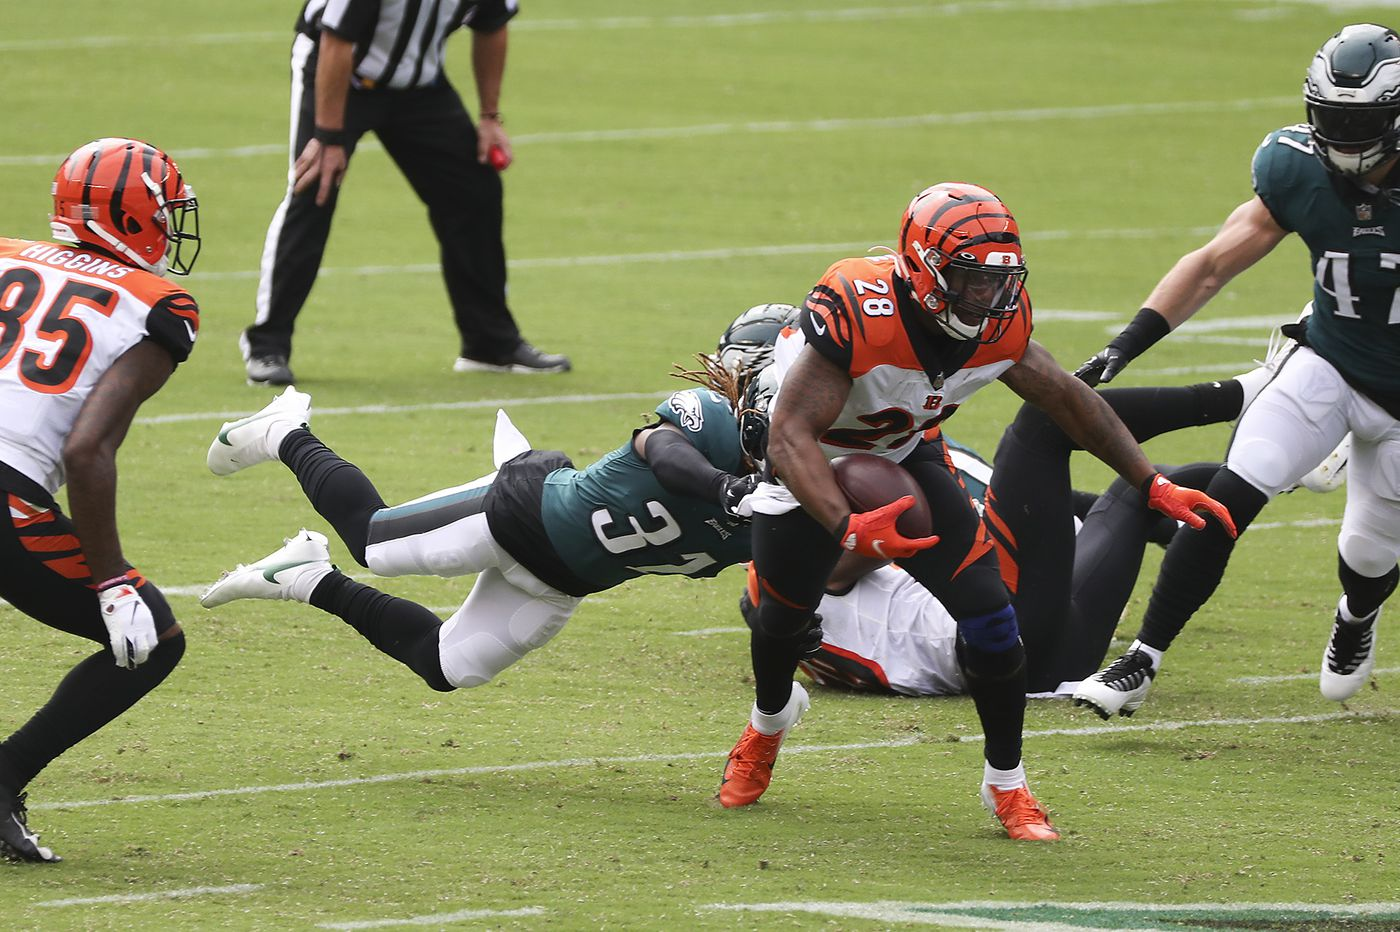 Grading the Eagles: With the exception of the run defense, nobody is making the honor roll